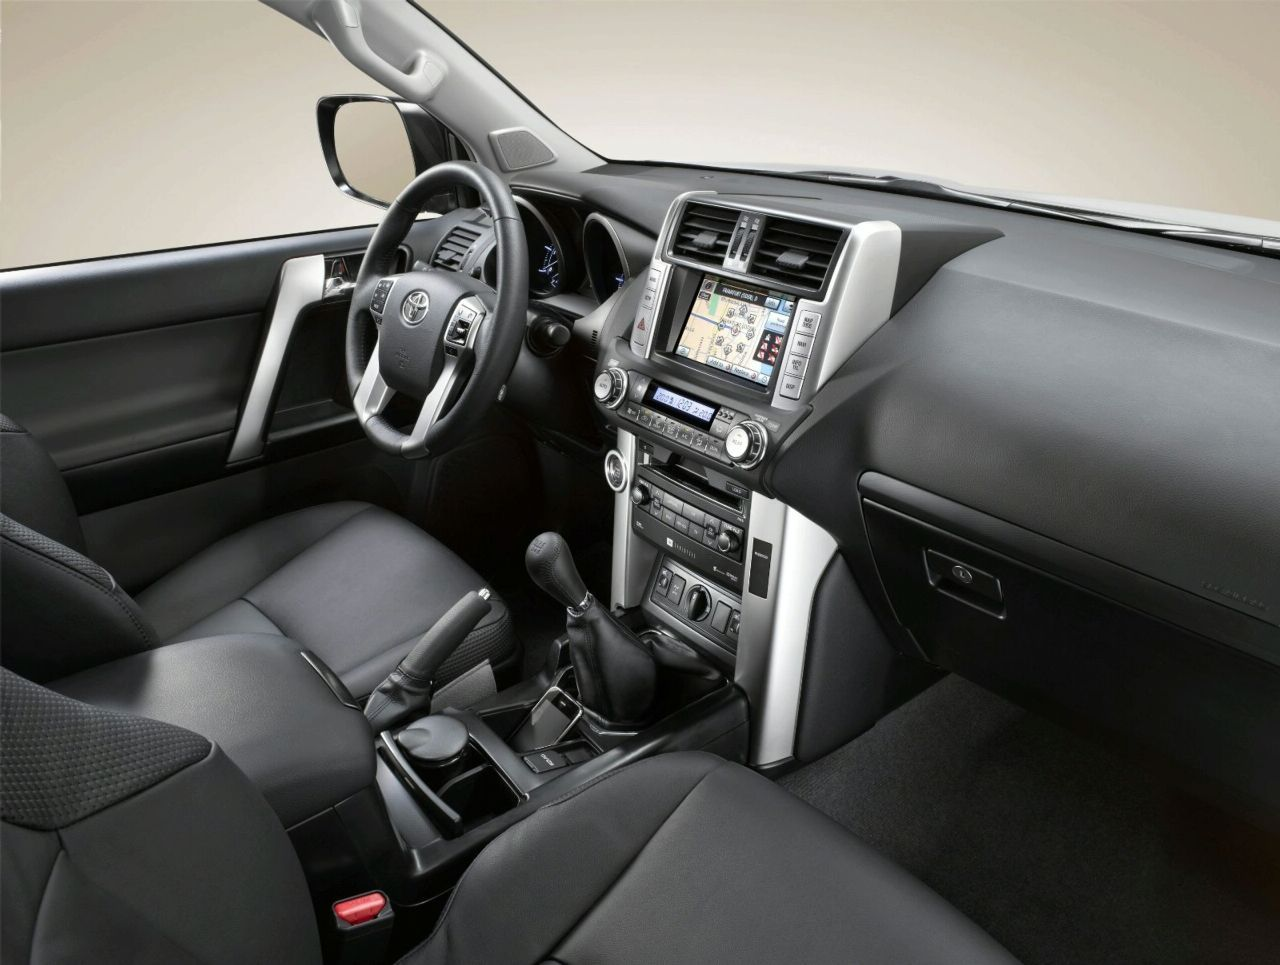 Toyota Land Cruiser 2010 Interior Img 8 It S Your Auto World New Cars Auto News Reviews